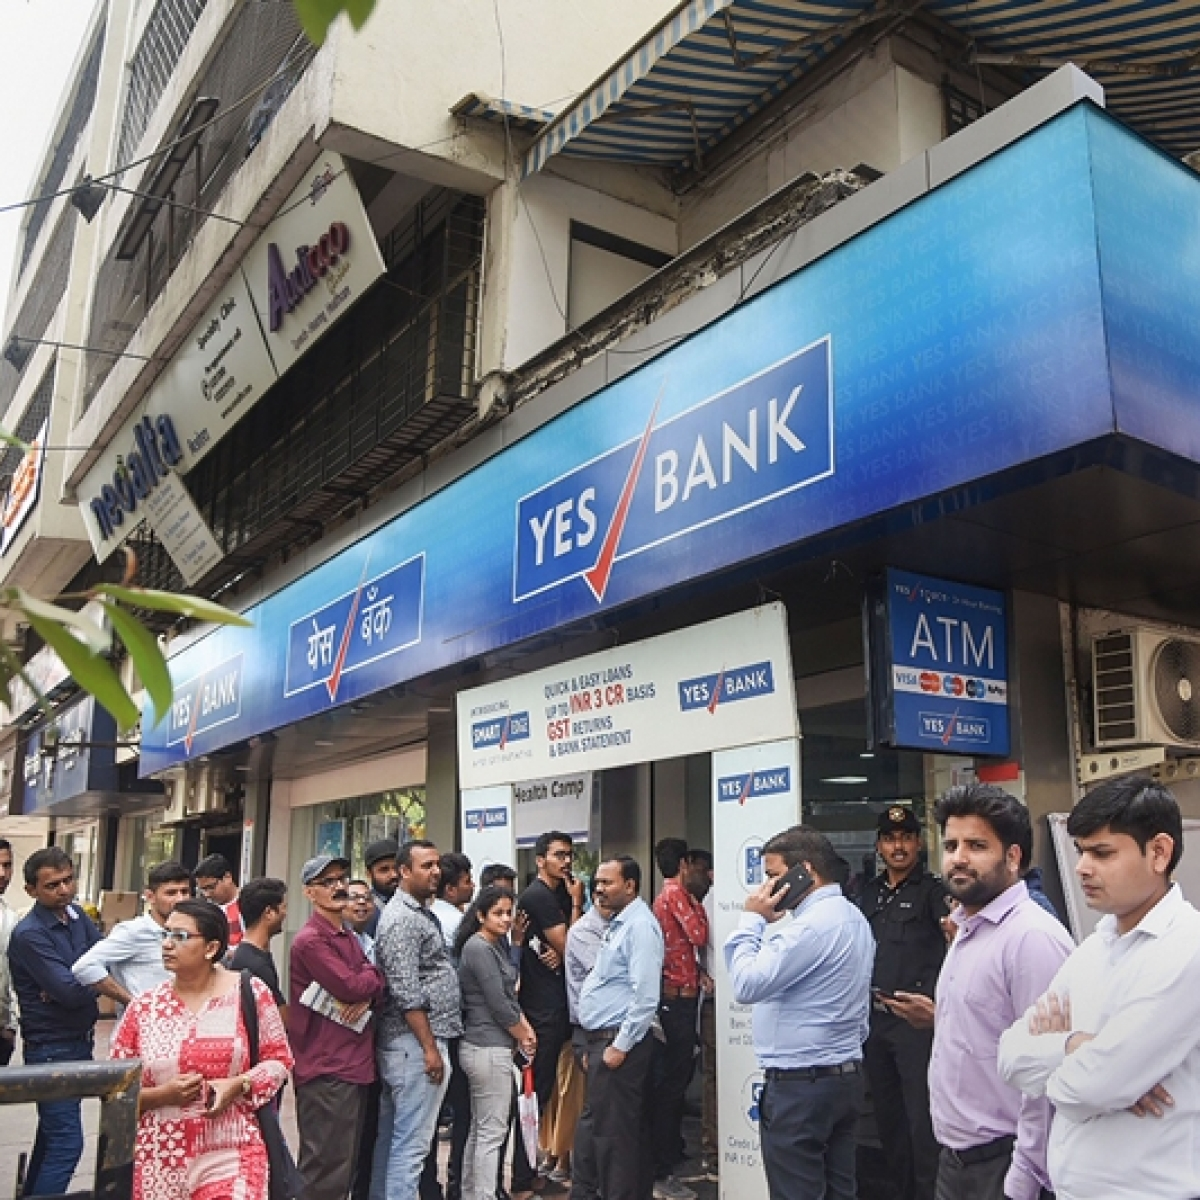 Yes Bank crisis: 44 firms, including Anil Ambani Group, Jet Airways accounted for bad loans worth Rs 34,000 crore